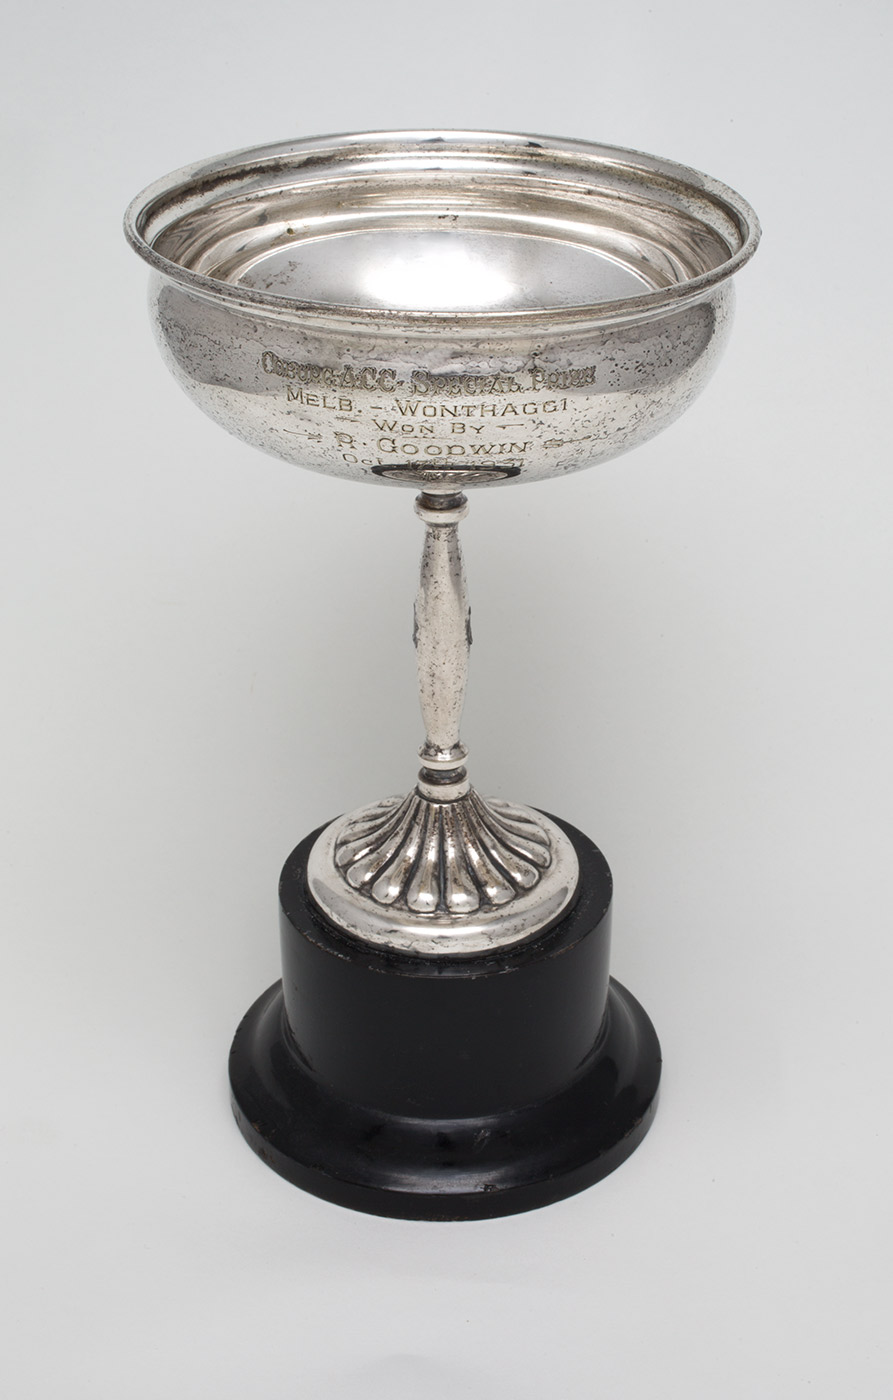 A circular silver presentation cup on a dark timber base. The inscription on the cup partially reads 'COBURG A.C.C. SPECIAL PRIZE / WON BY / R. GOODWIN / Oct 17th 1931'. - click to view larger image